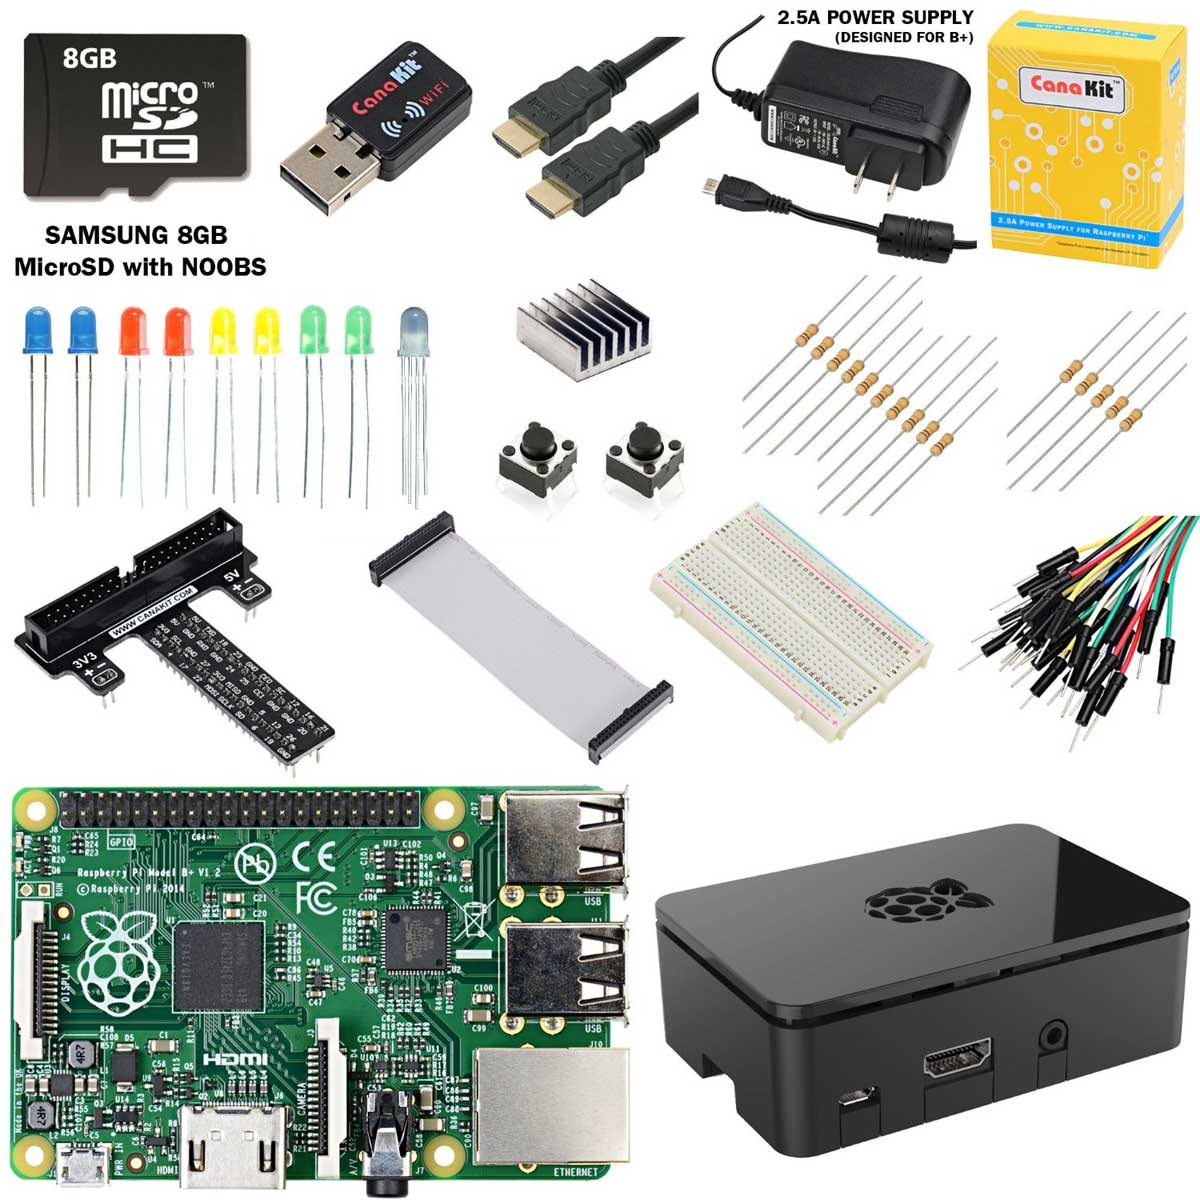 the best raspberry pi 3 starter kits compared and reviewed pretzelCatalogue Educational Kits Cana Kit Kits Timers #5